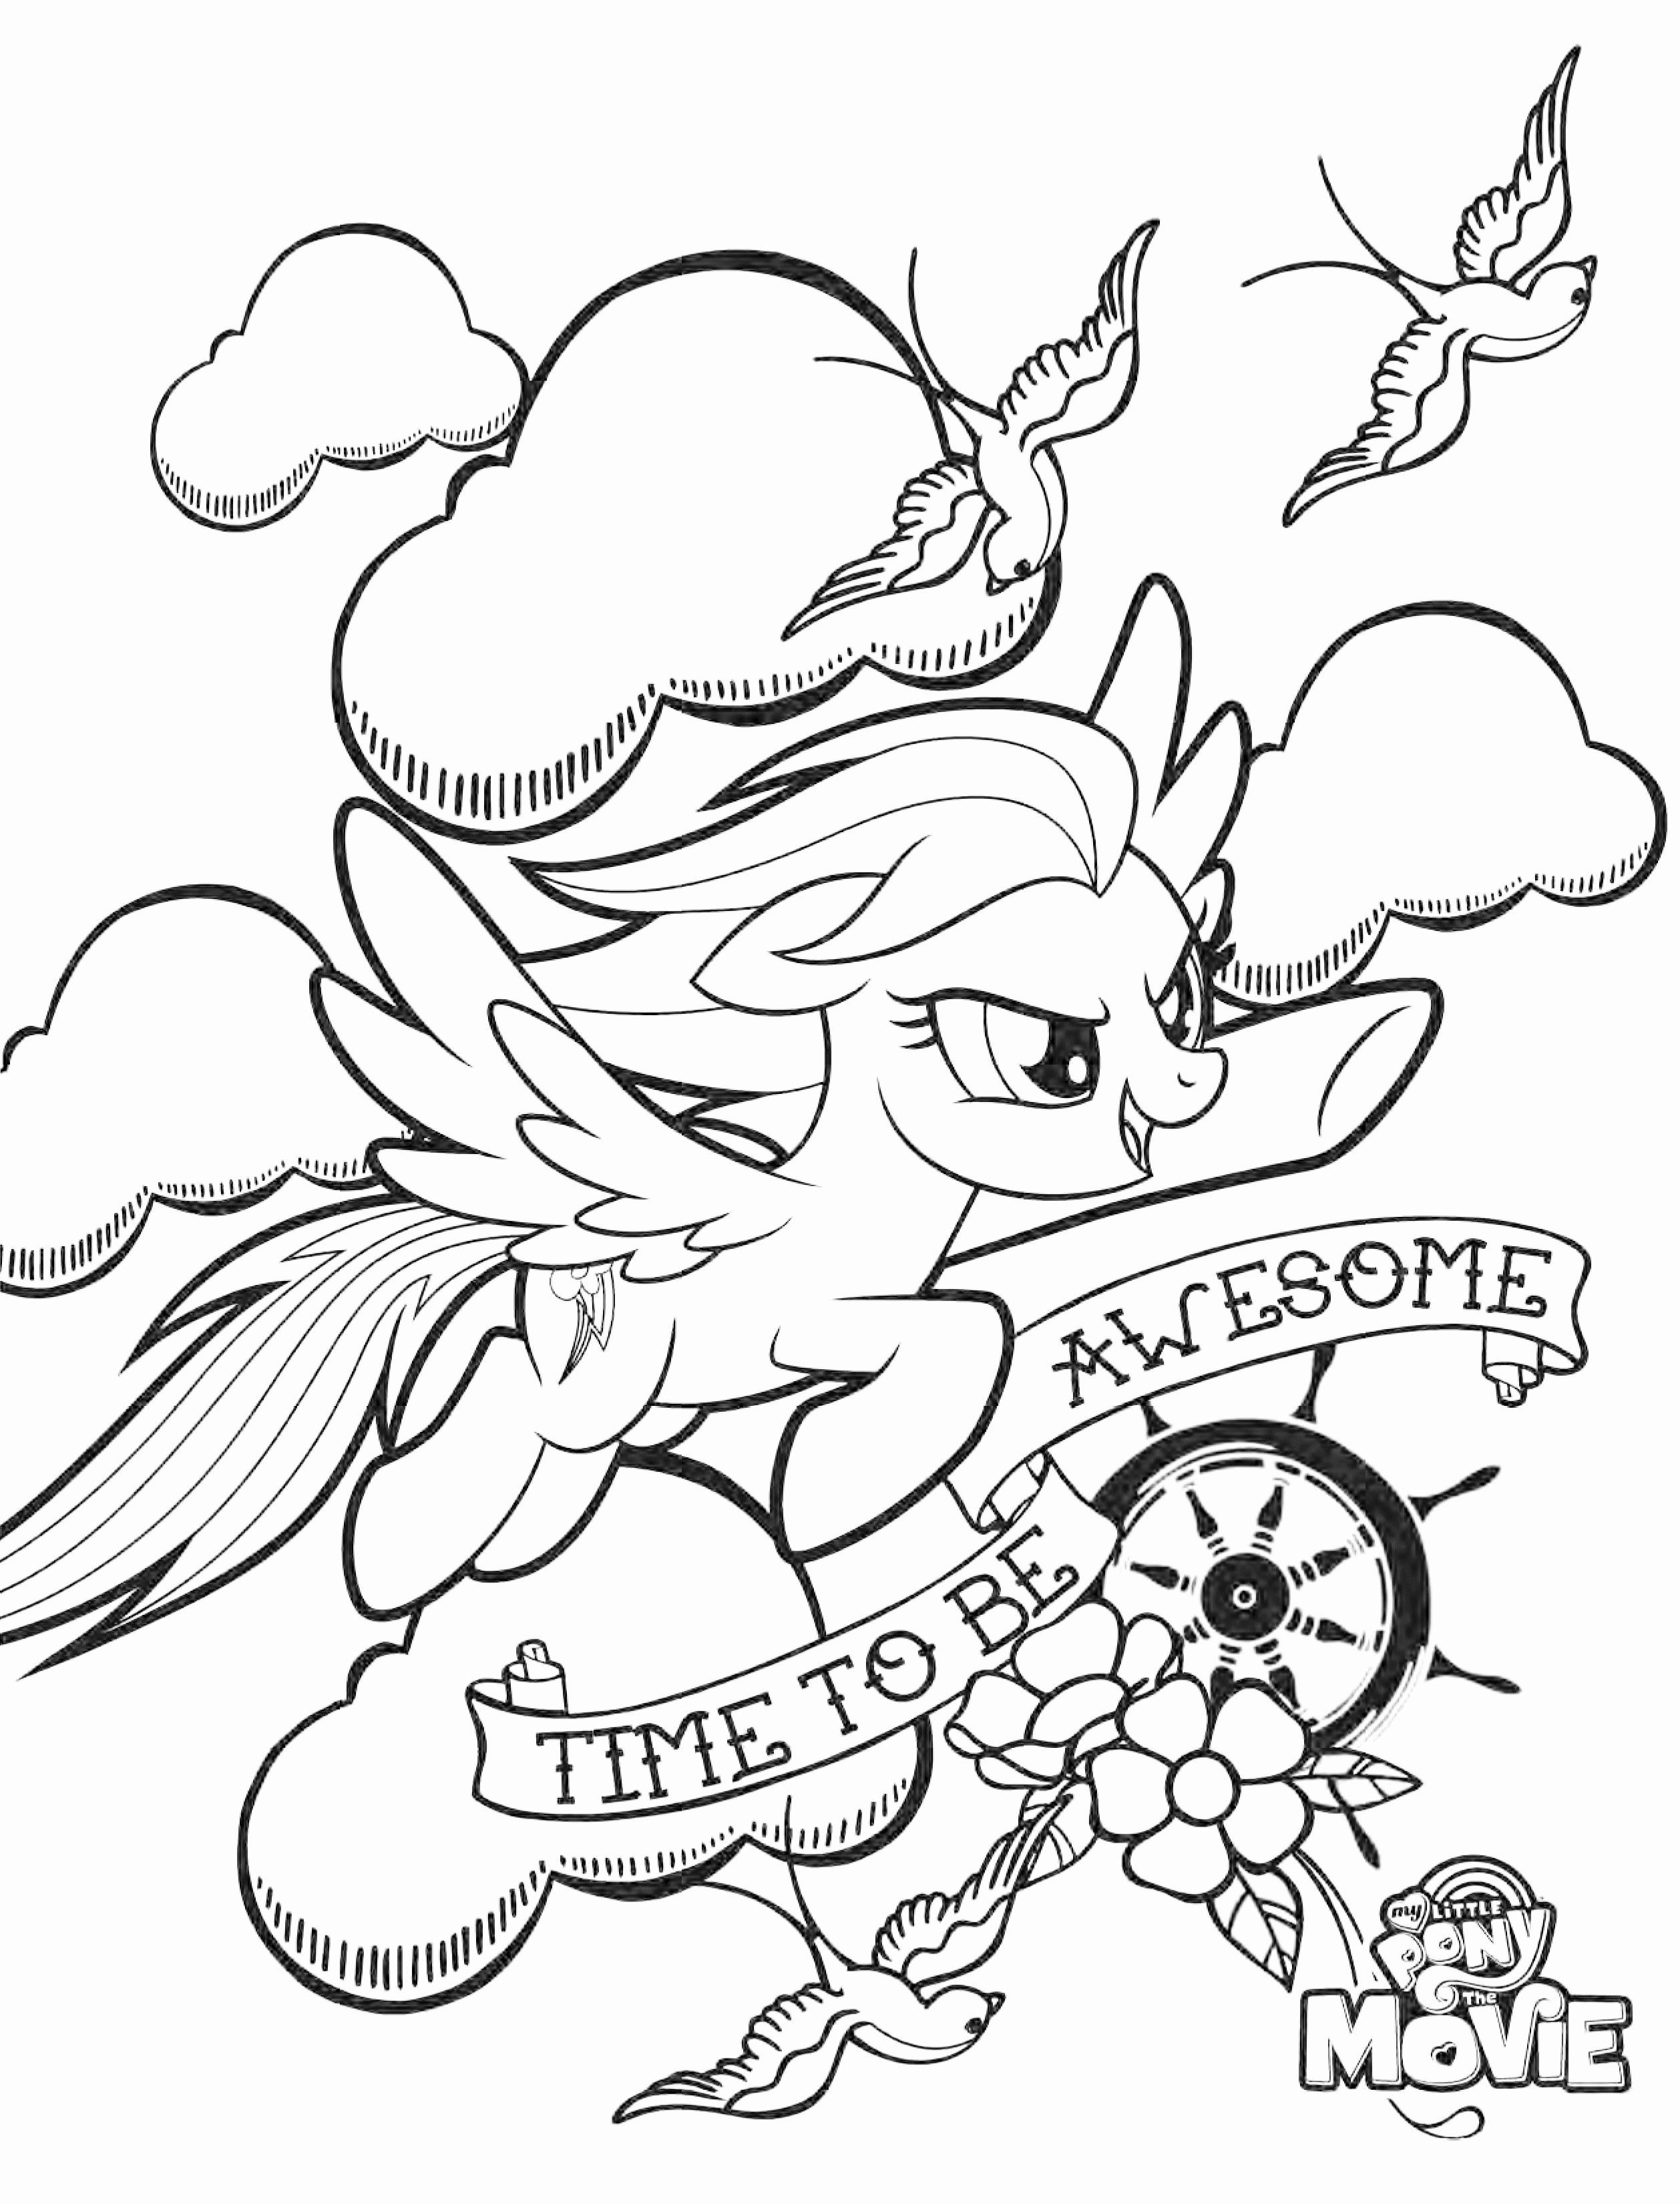 Litlltle Pony Drawing Book Lindsay Cibos Fresh Pin By Chalane Sheffield On My Little Pon My Little Pony Coloring Princess Coloring Pages Mermaid Coloring Pages